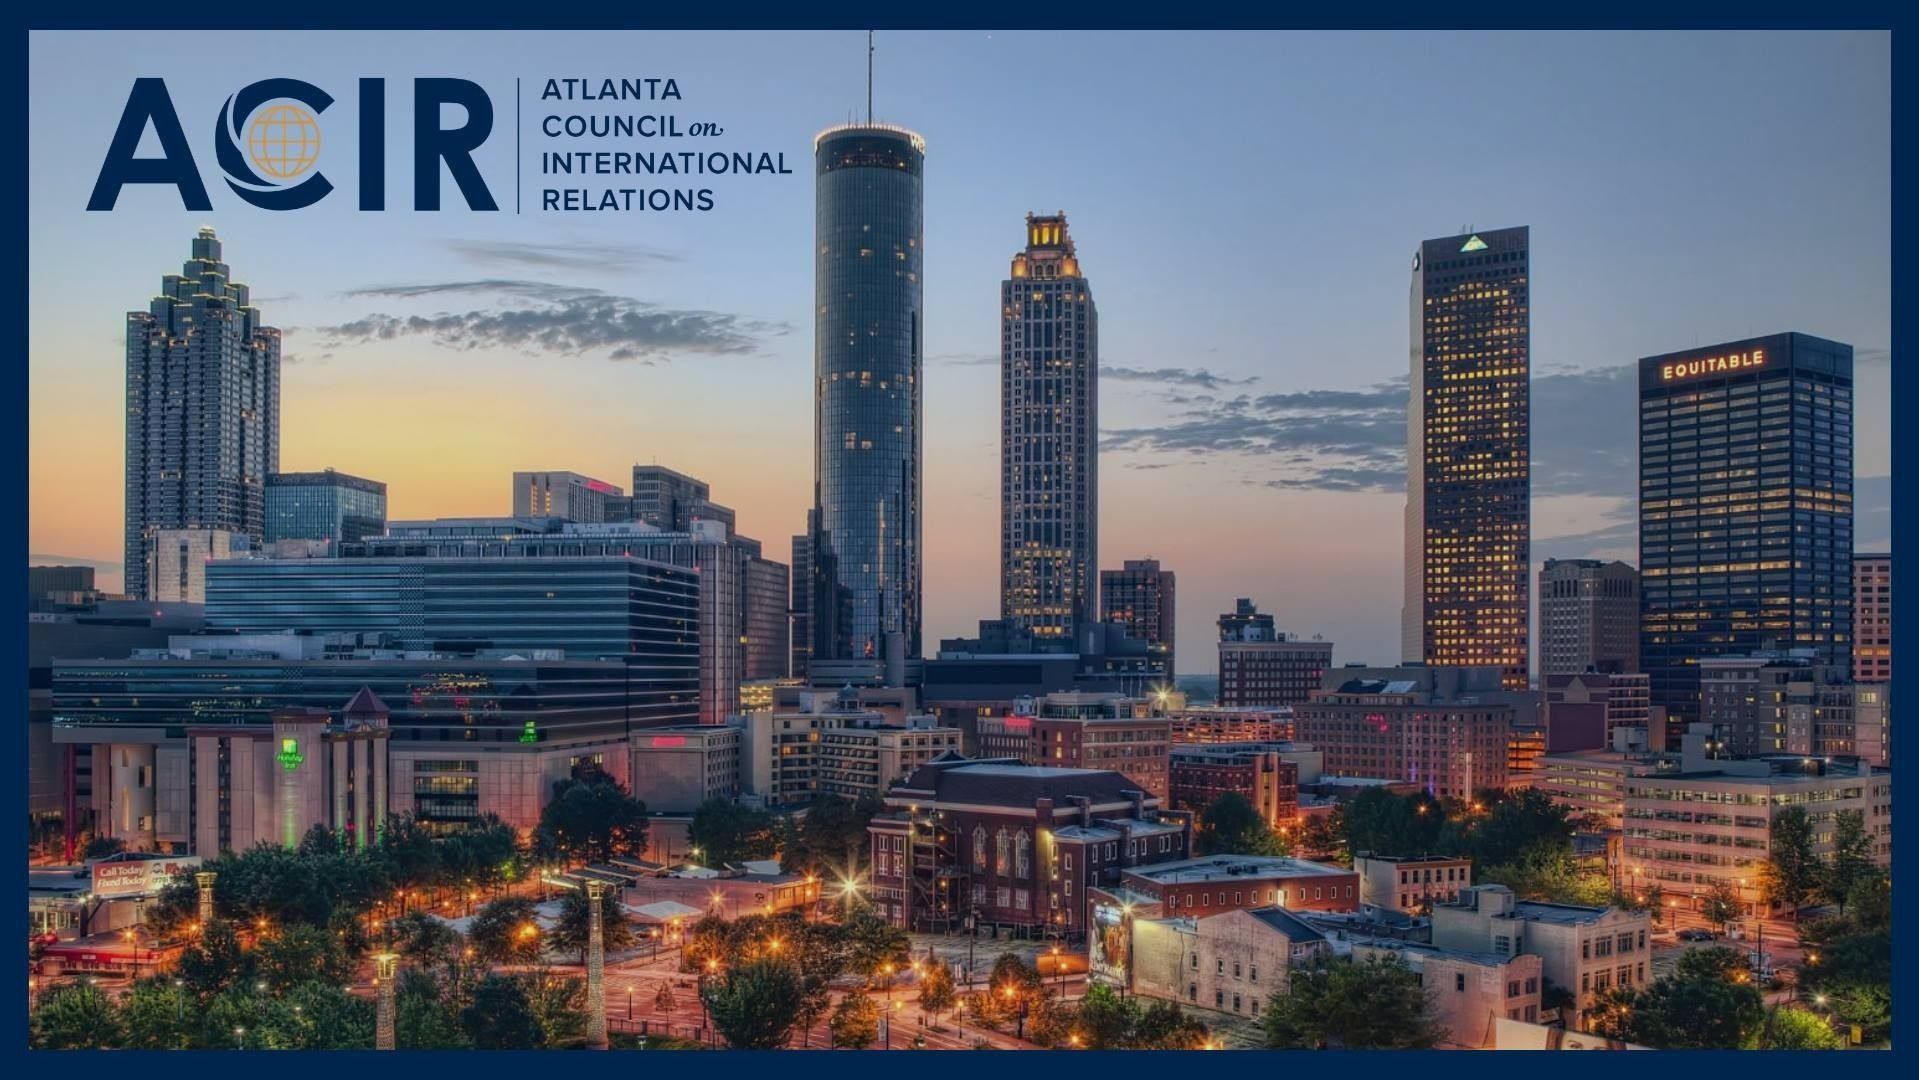 Atlanta Council on International Relations